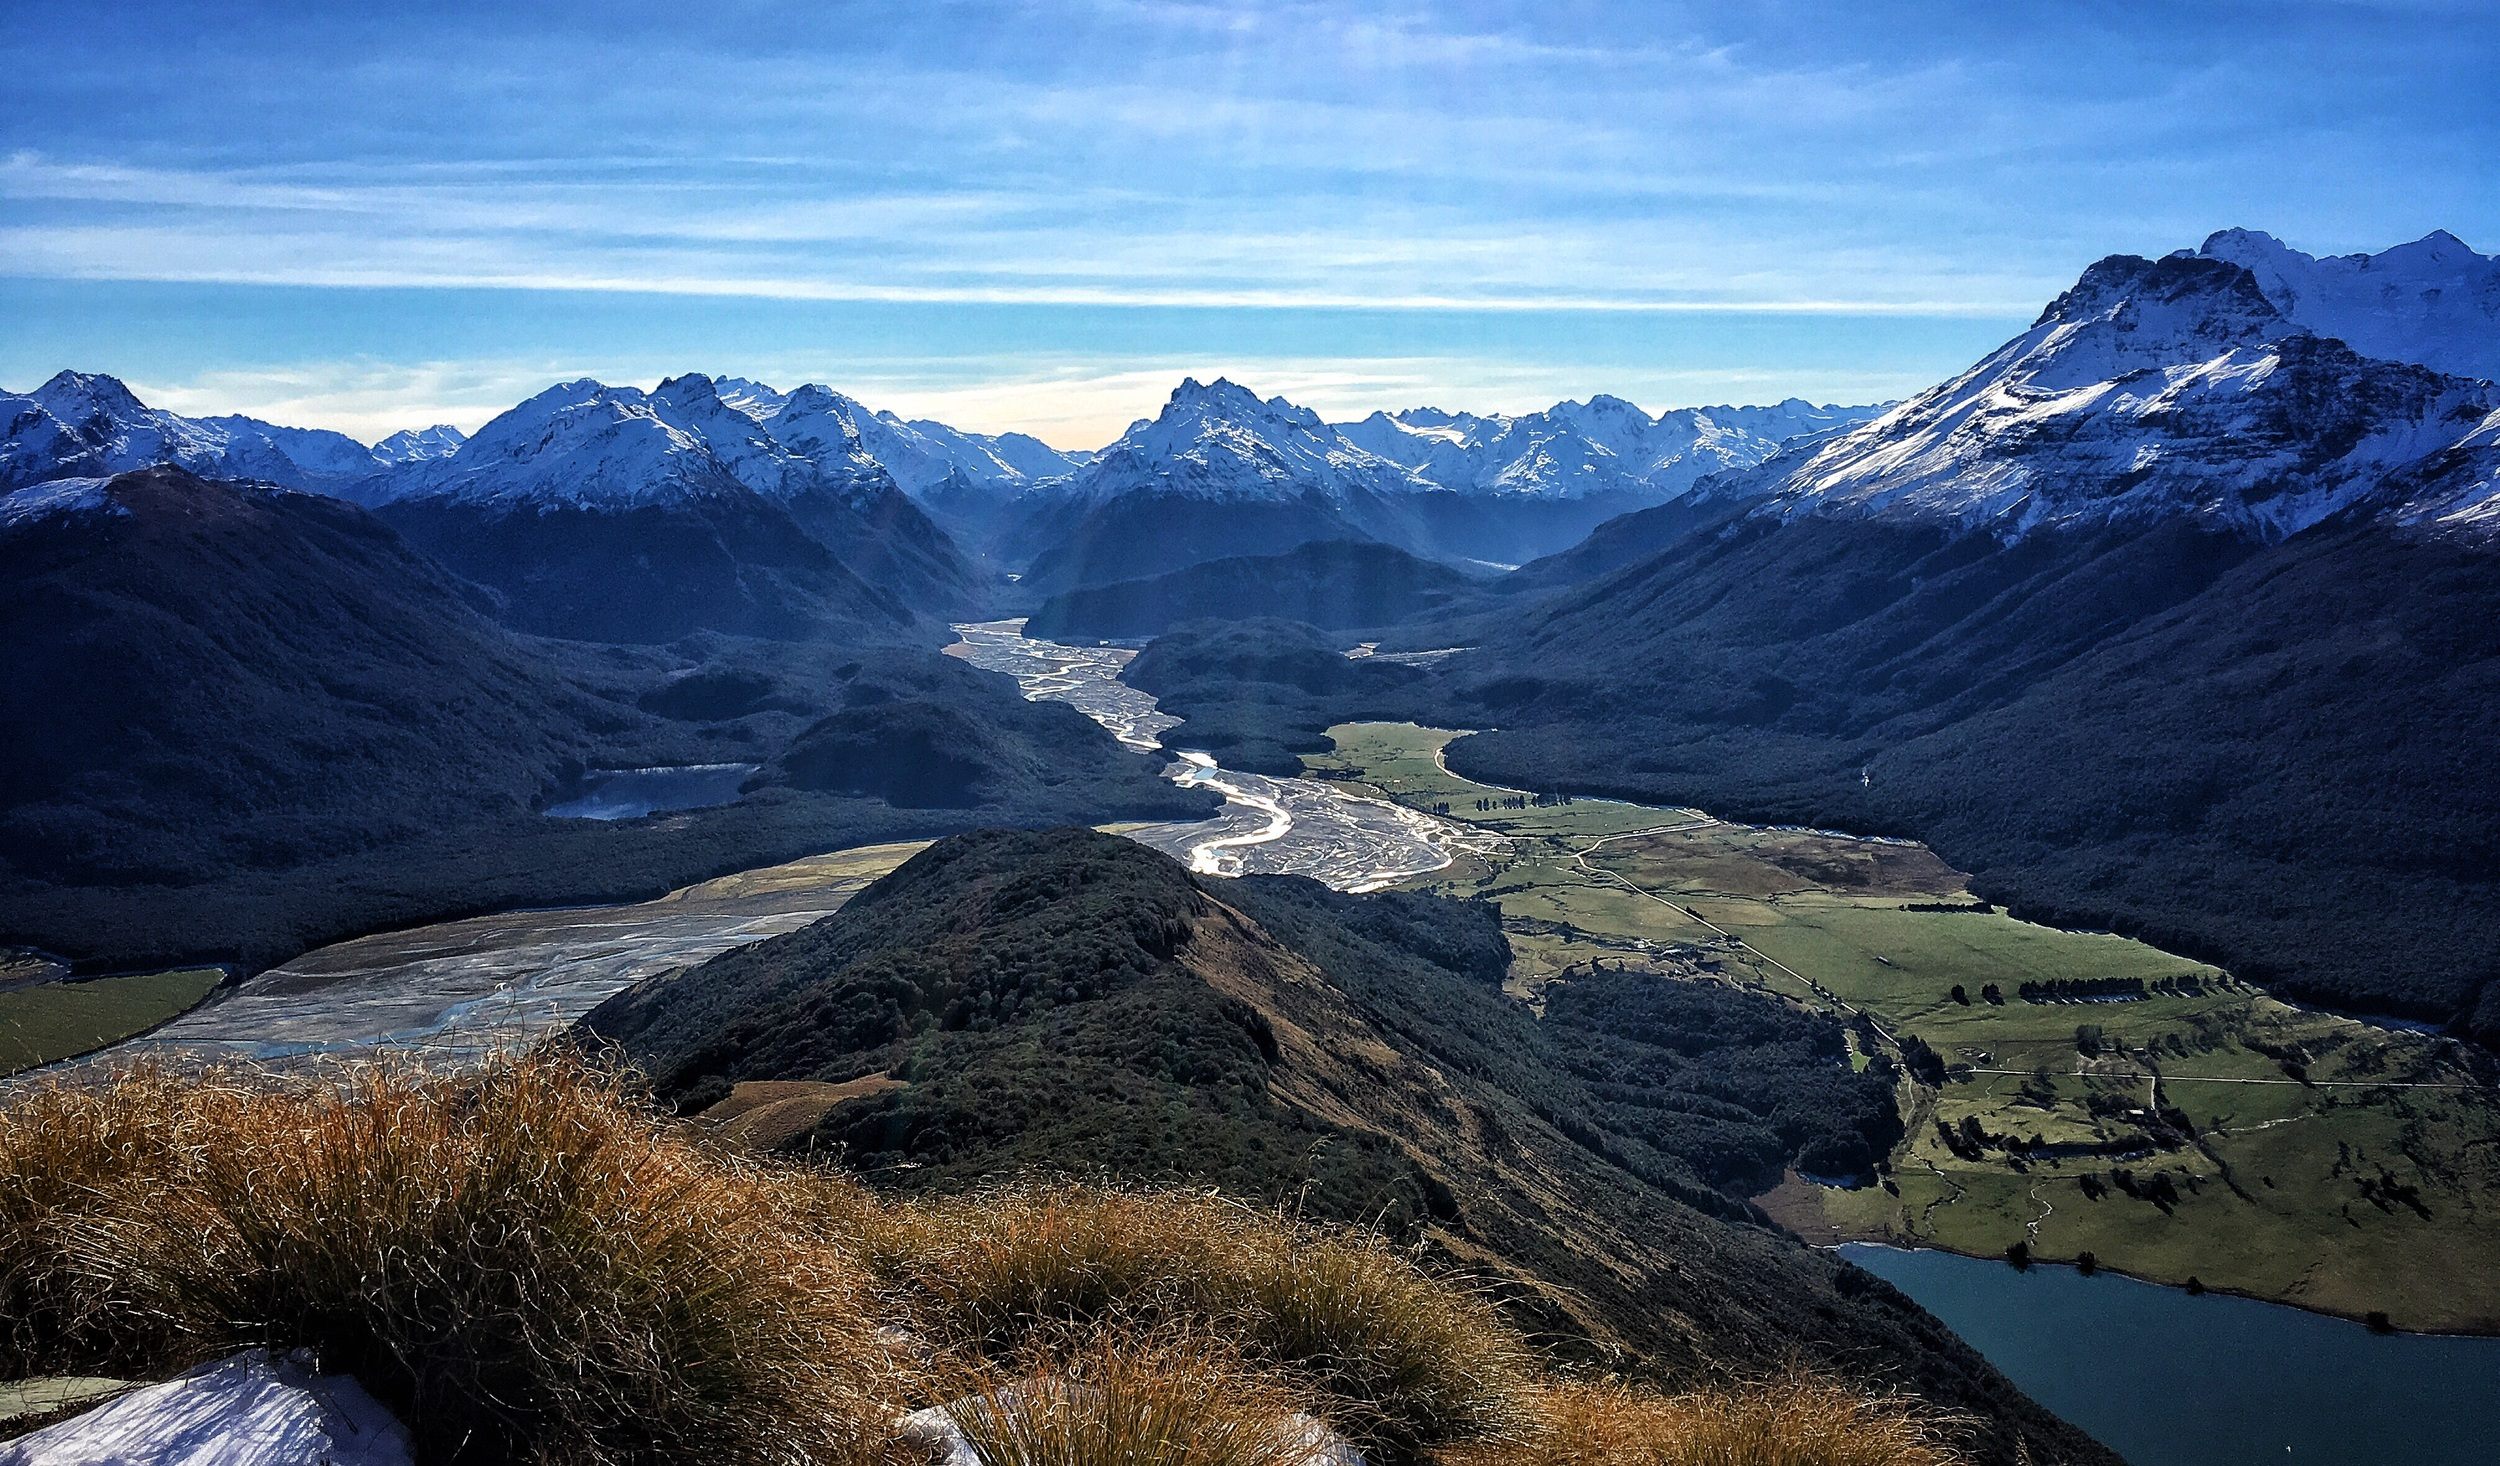 // Top of Mt Alfred, looking North onto Paradise, the Dart River, Mt Earnslaw, and the Southern Alps